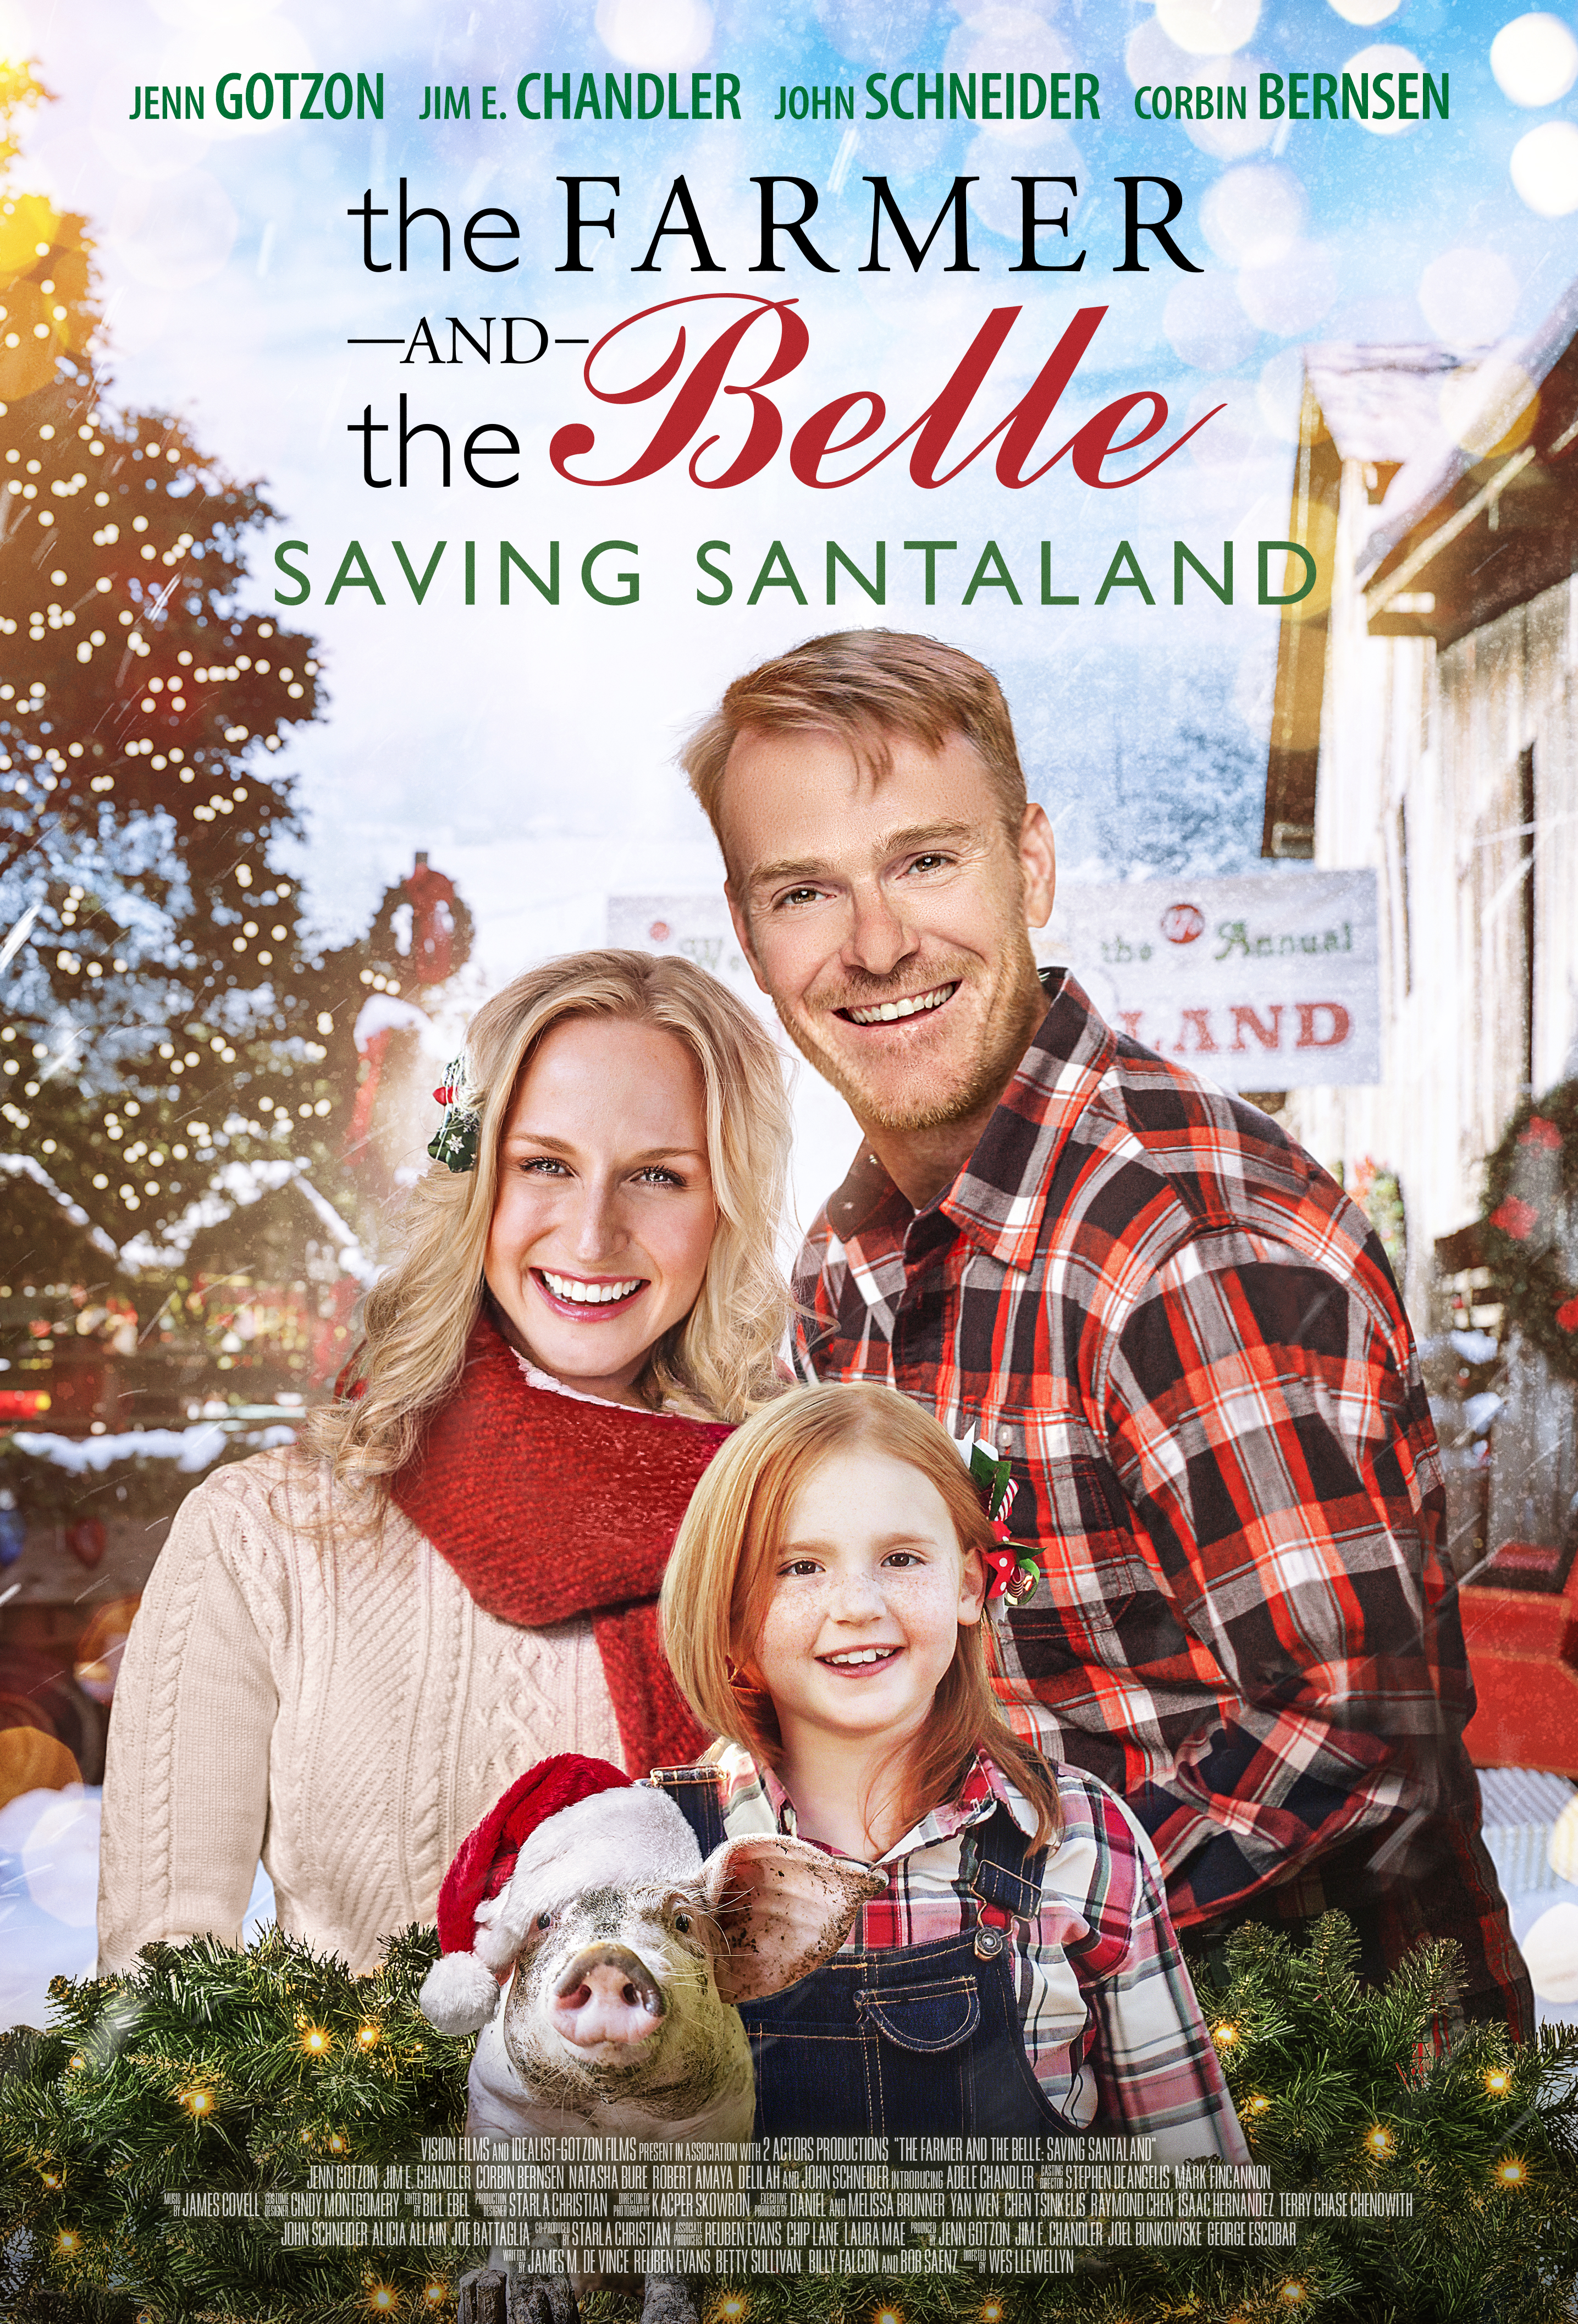 Uplifting Christian Film Sets Release Date, A Story For All Ages on Faith, Family and the True Meaning of Beauty